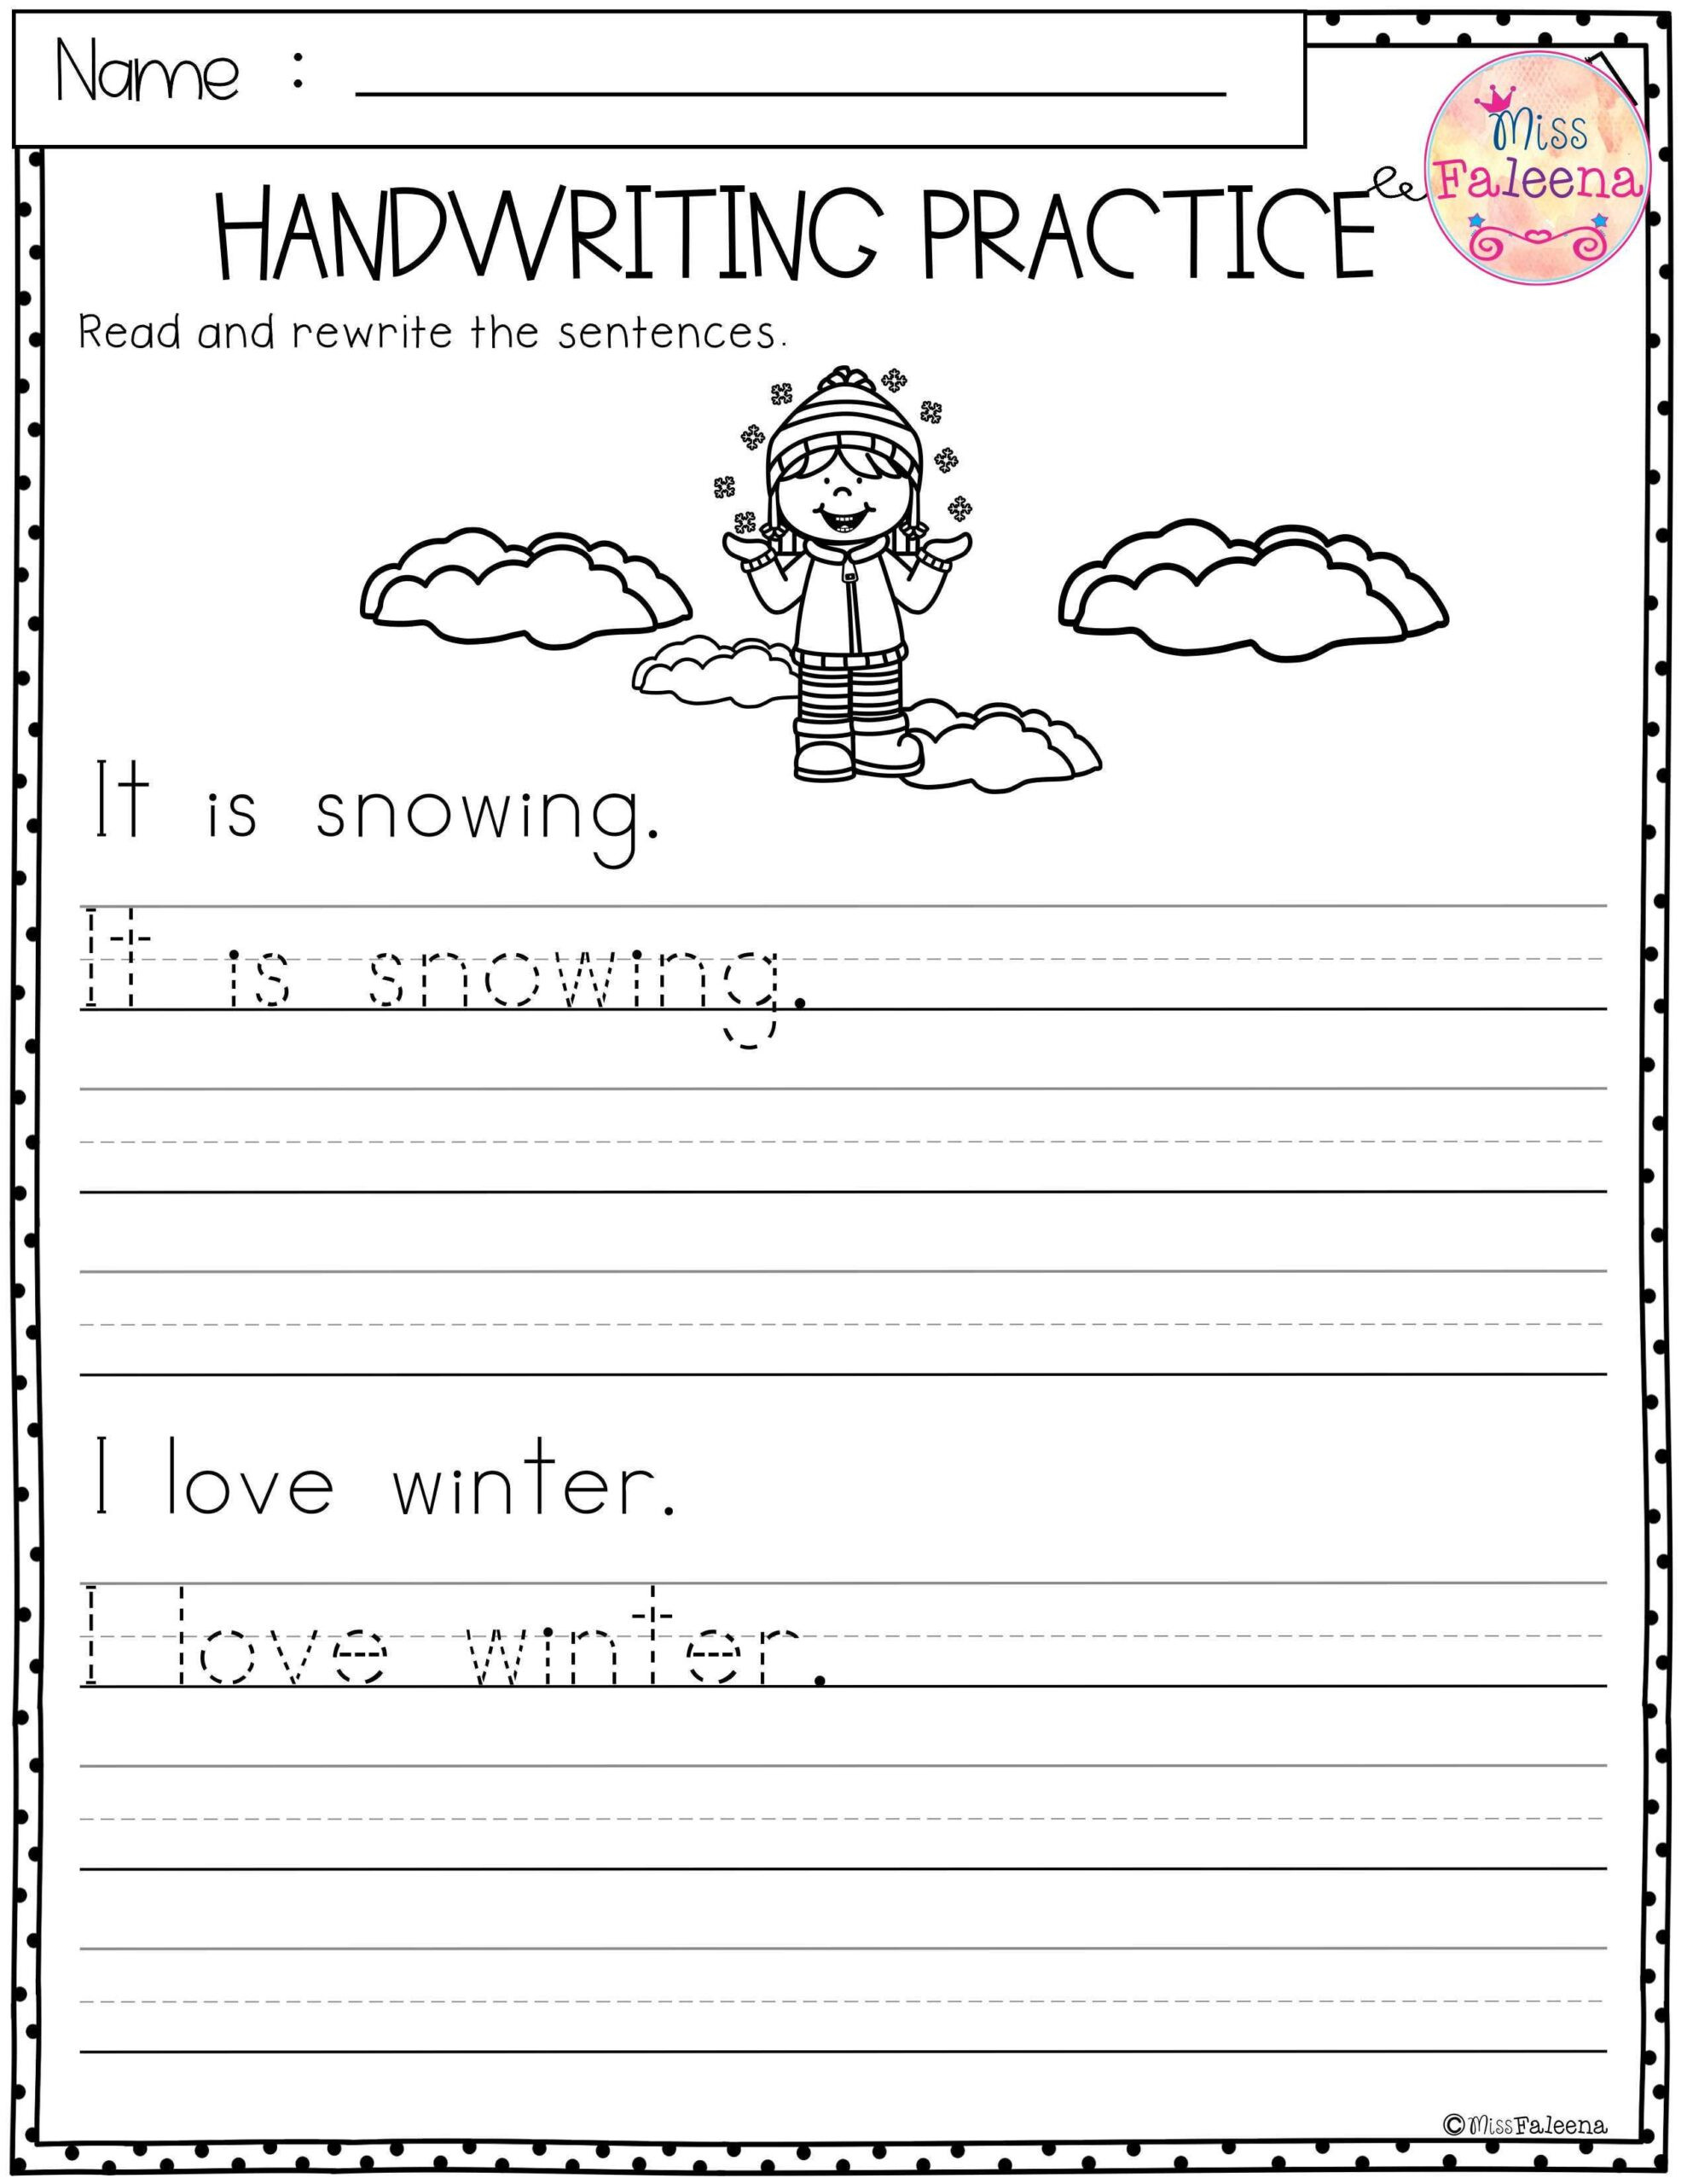 winter handwriting practice writing sentences best sentence practise tracing worksheets for scaled